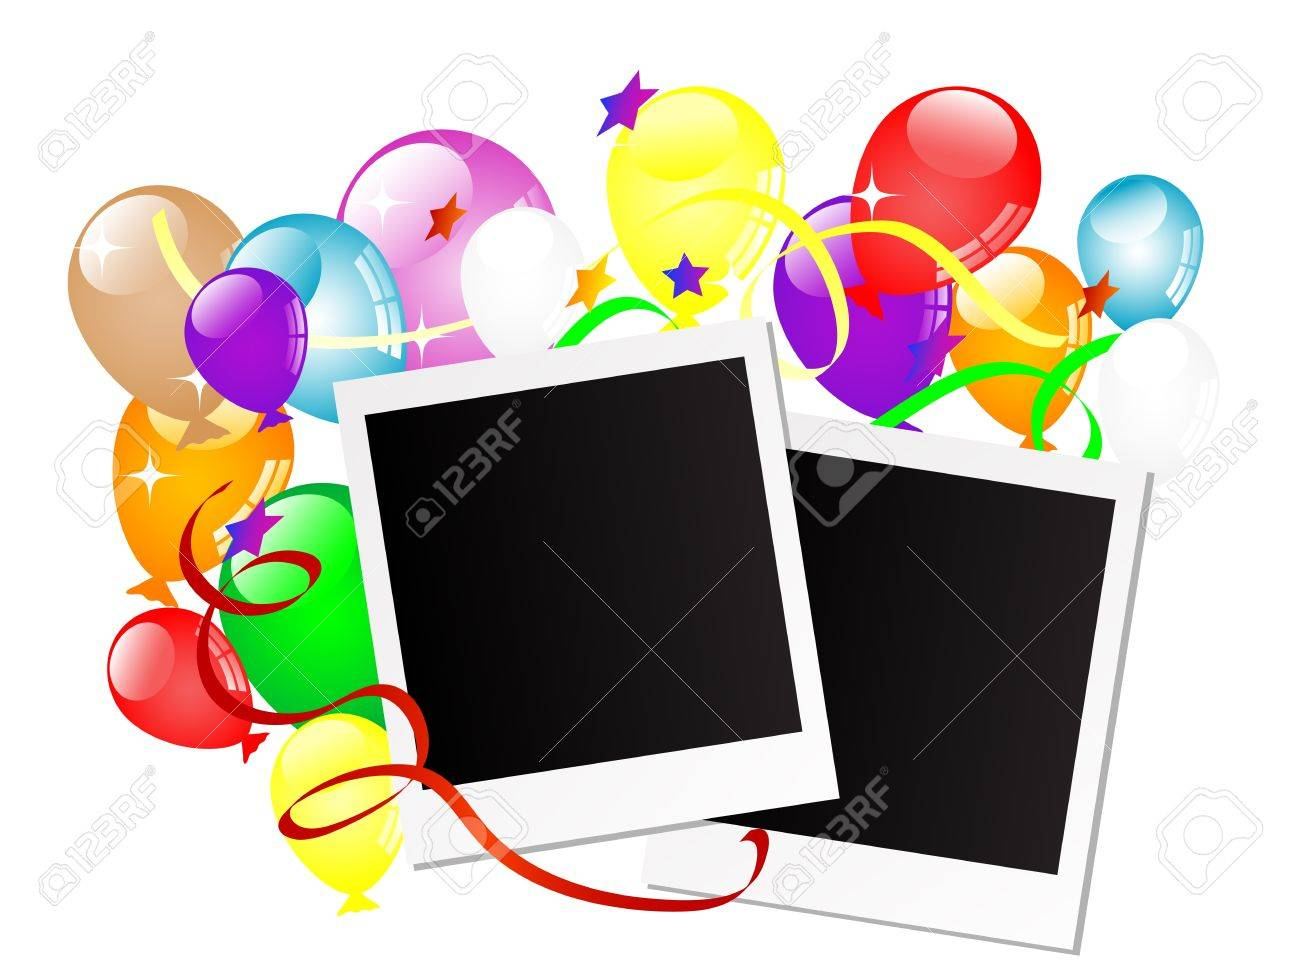 Carnival background with balloons and ribbons Stock Vector - 17166518